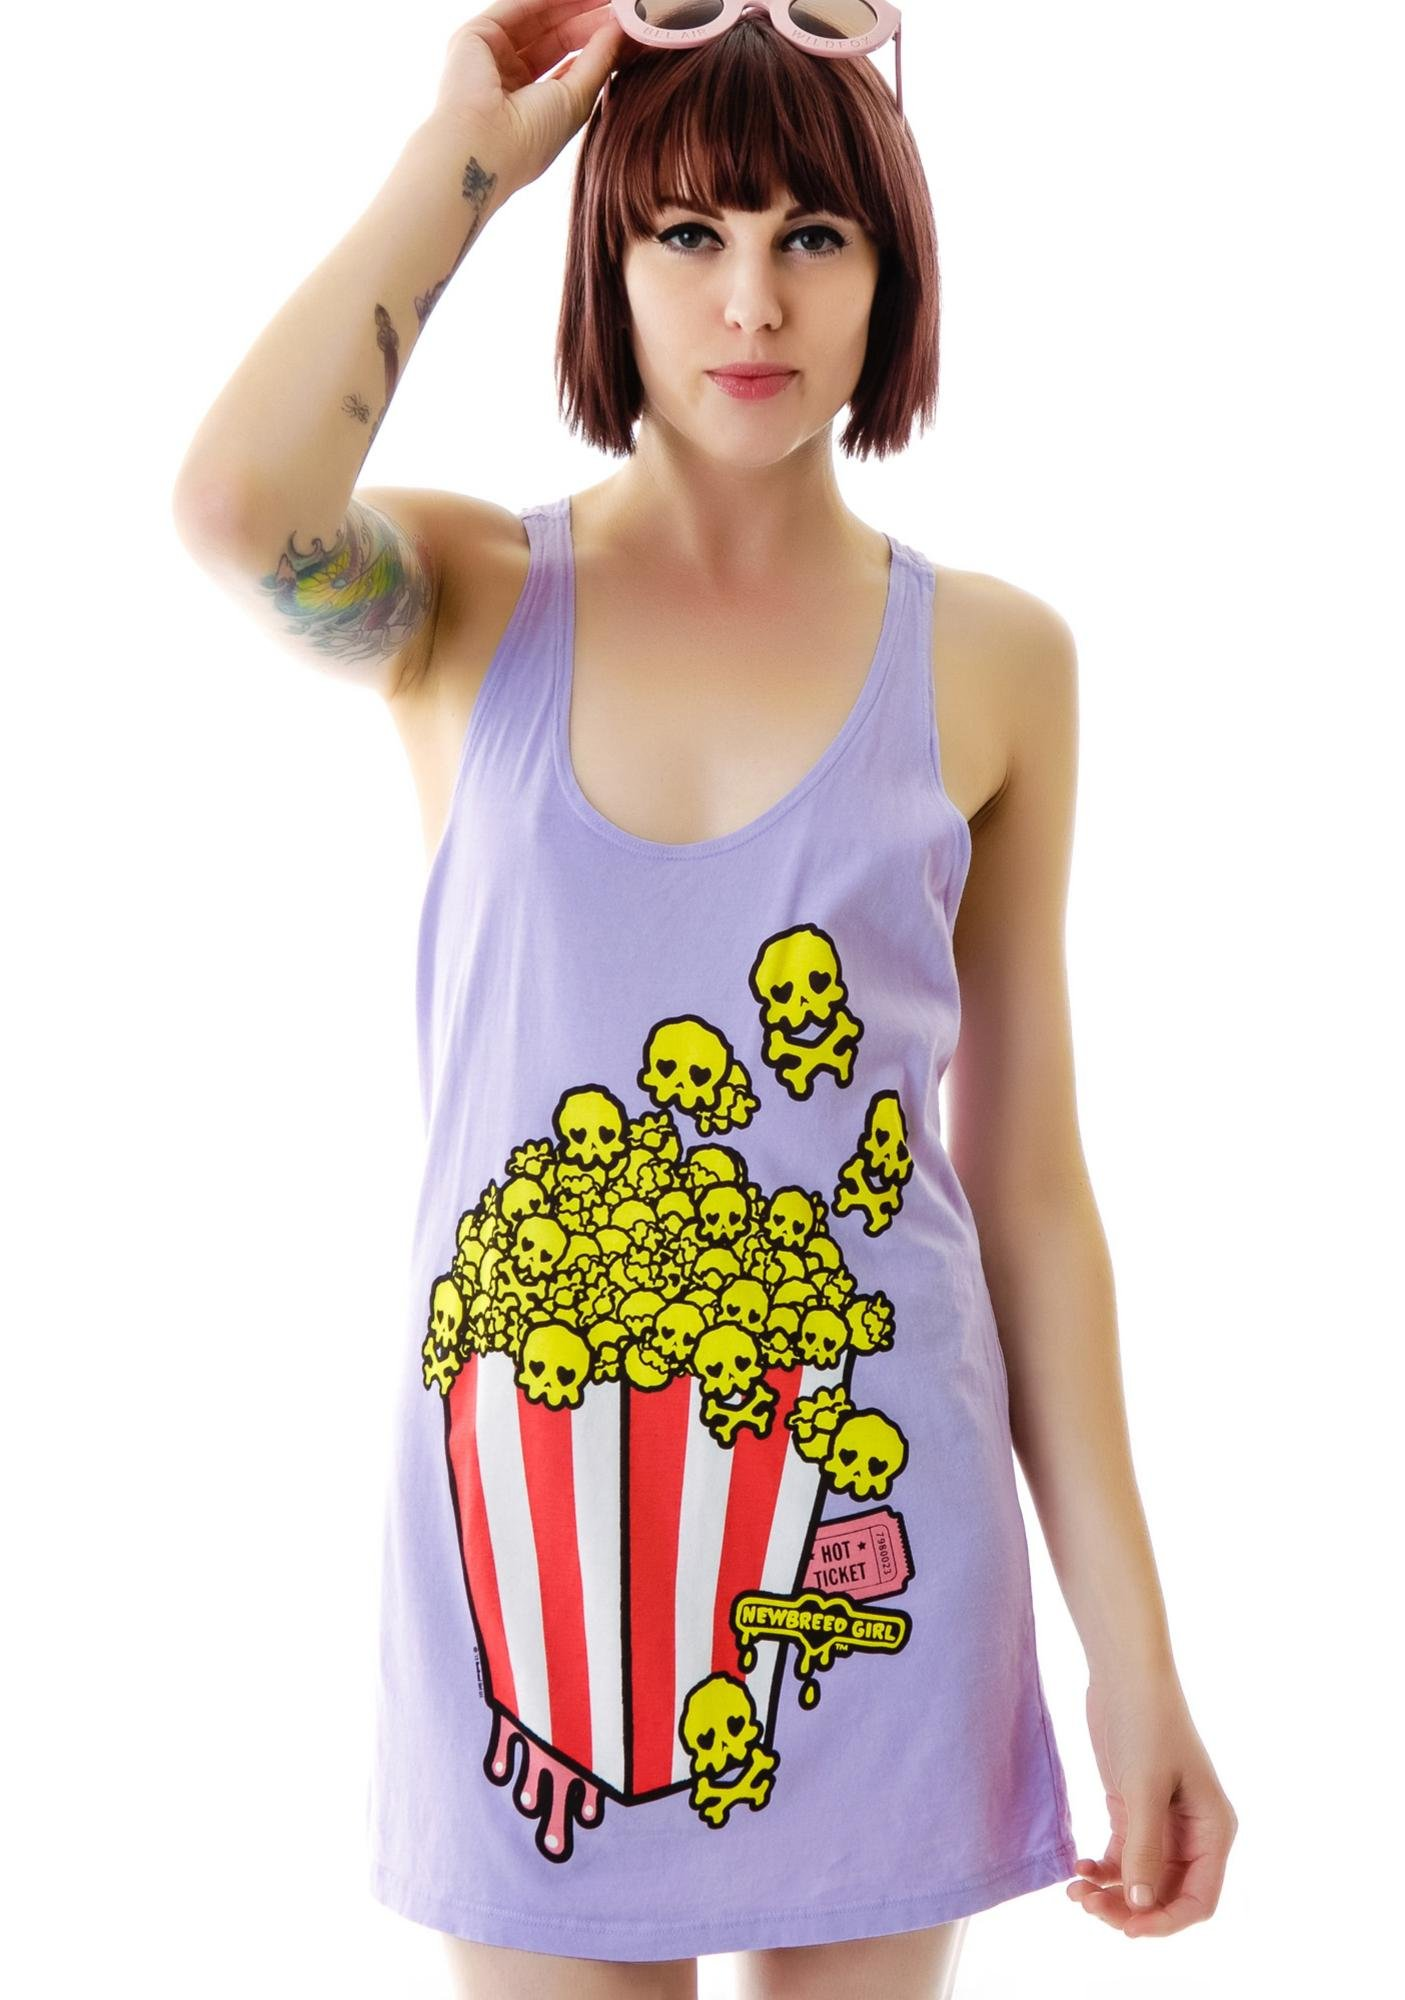 New Breed Girl Skully Popcorn Tank